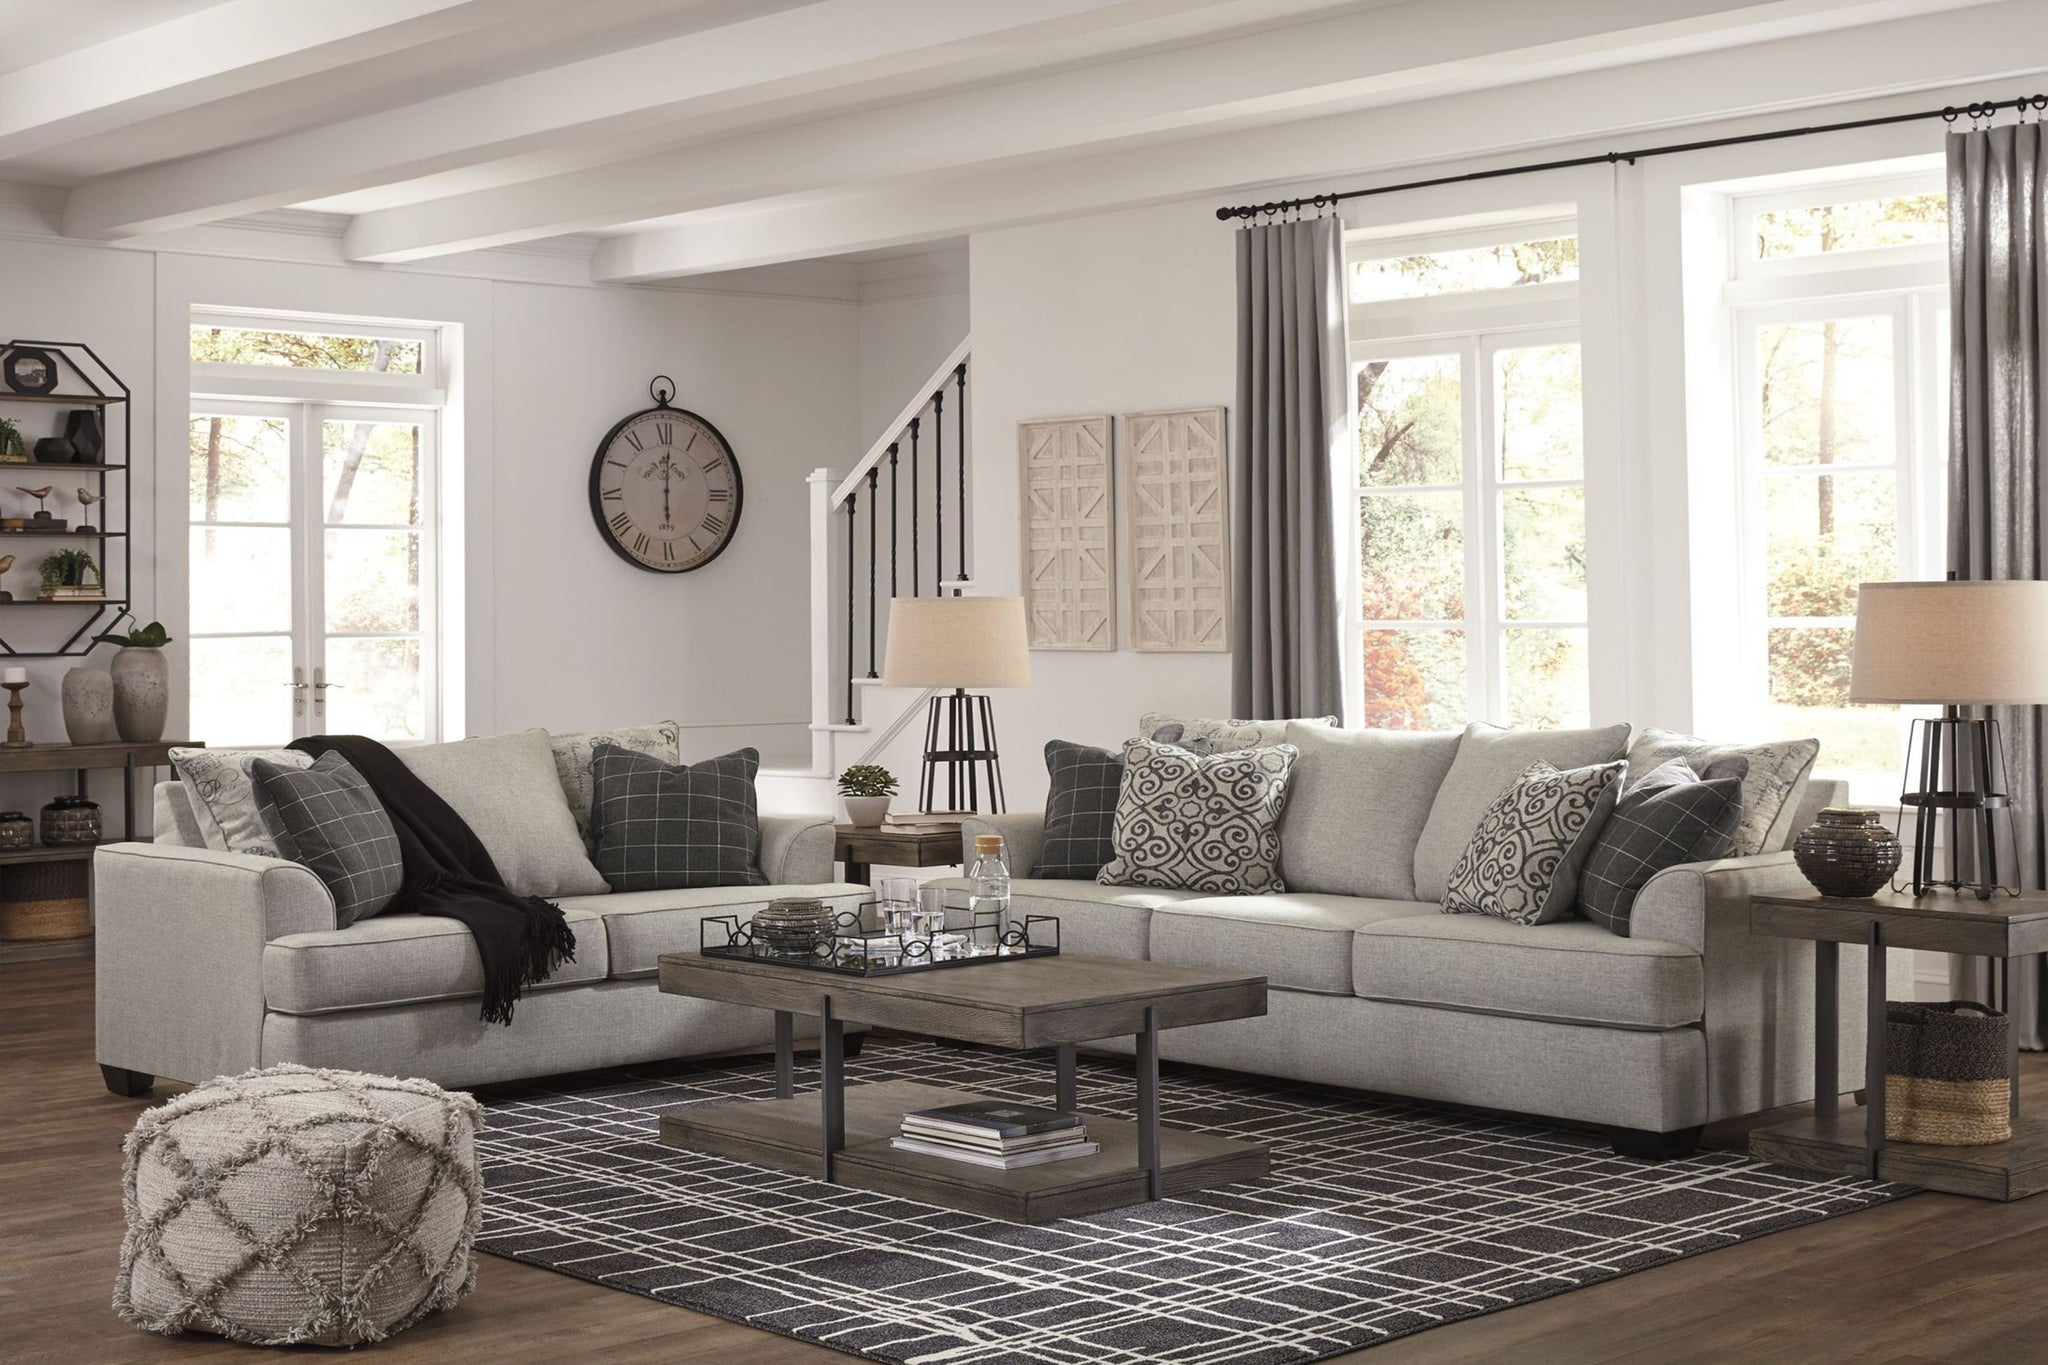 Velletri Pewter Queen Sofa Sleeper La Sierra Furniture